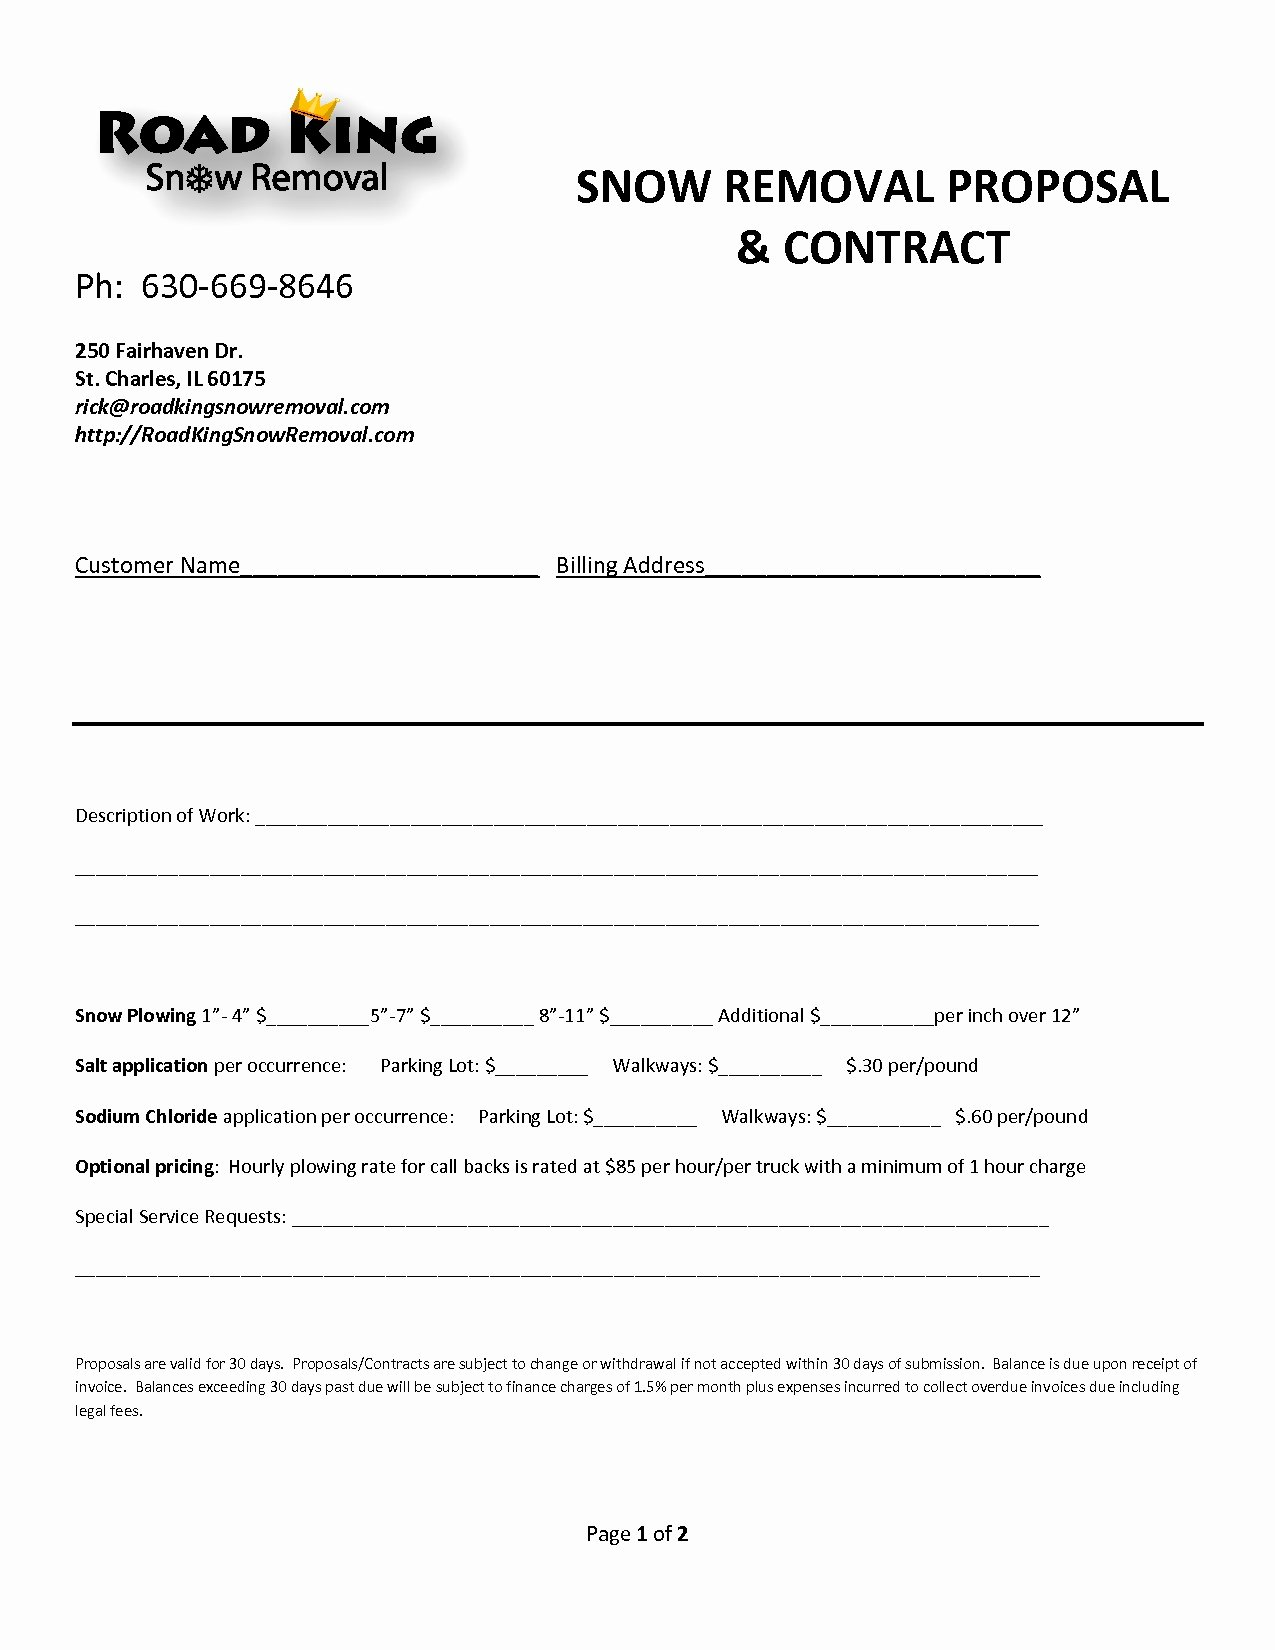 Snow Removal Bid Template New Snow Removal Invoice Invoice Template Ideas